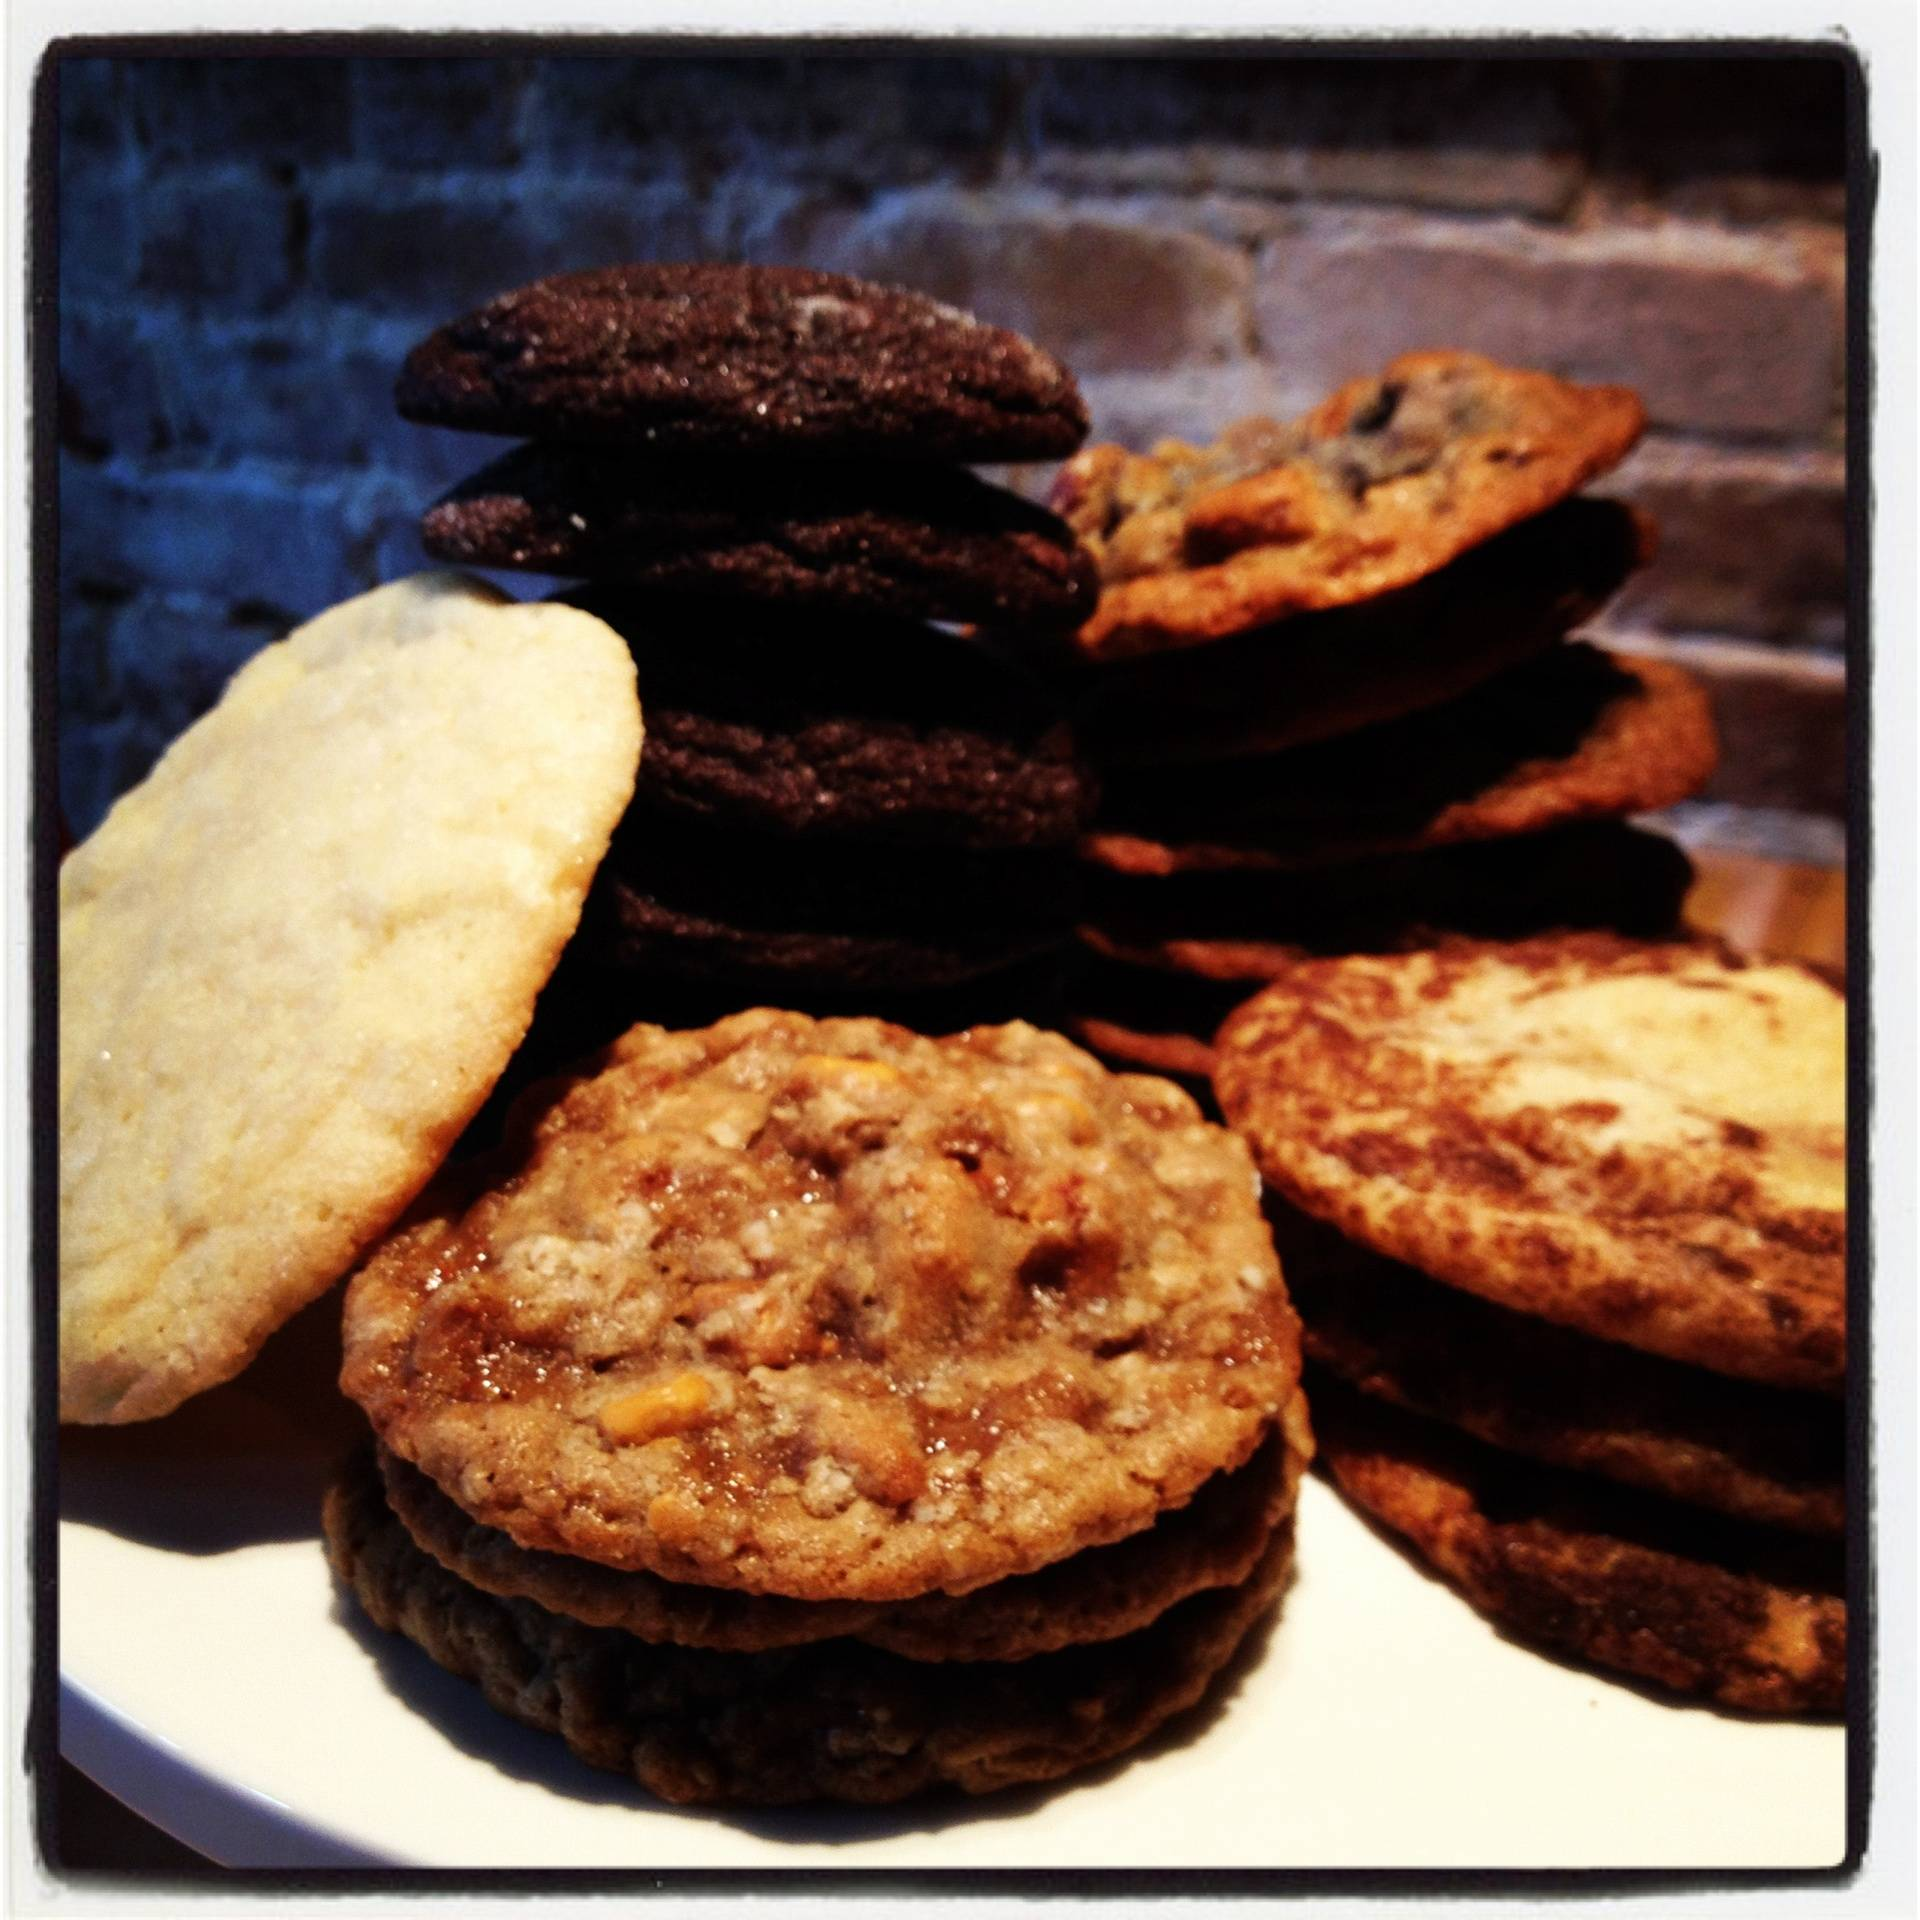 Our super-popular, world famous cookies!